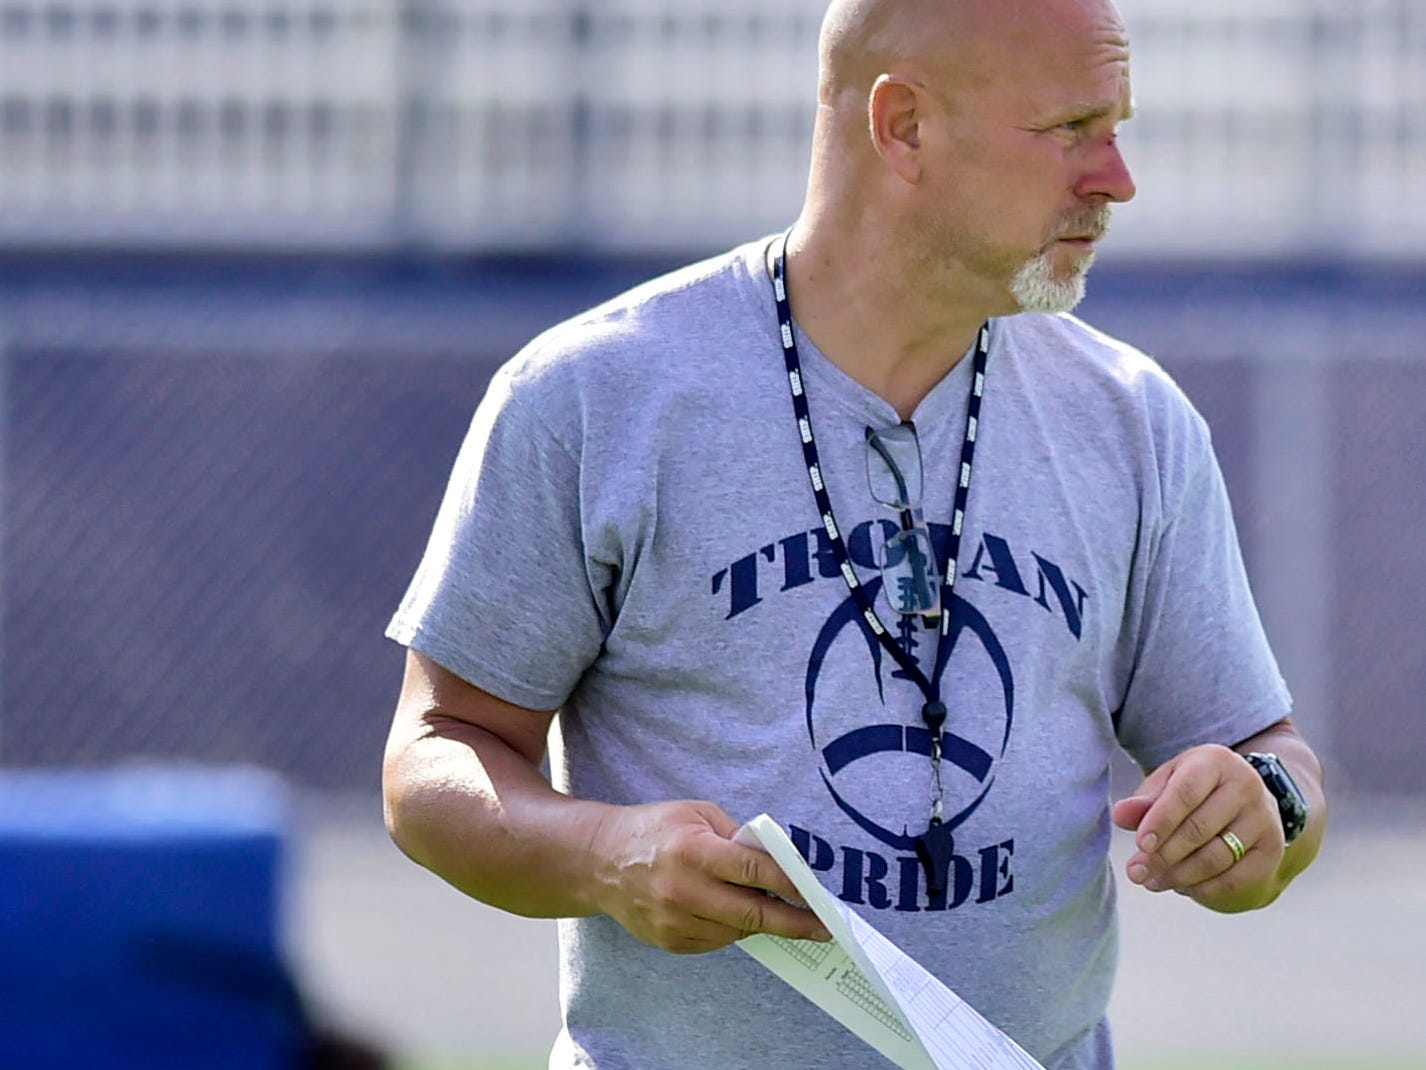 Chambersburg coach Mark Luther coaches the Trojans in their first week of practice. Chambersburg Trojans opened fall practice, the week of August 6, 2018, for the upcoming football season.